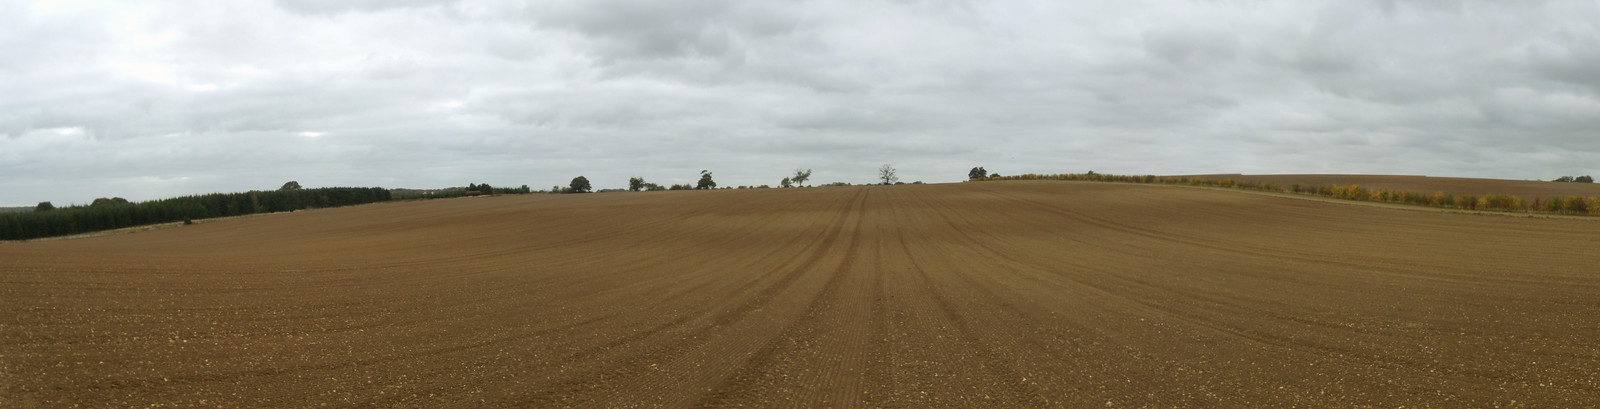 Ploughed field Watton-at-Stone Circular